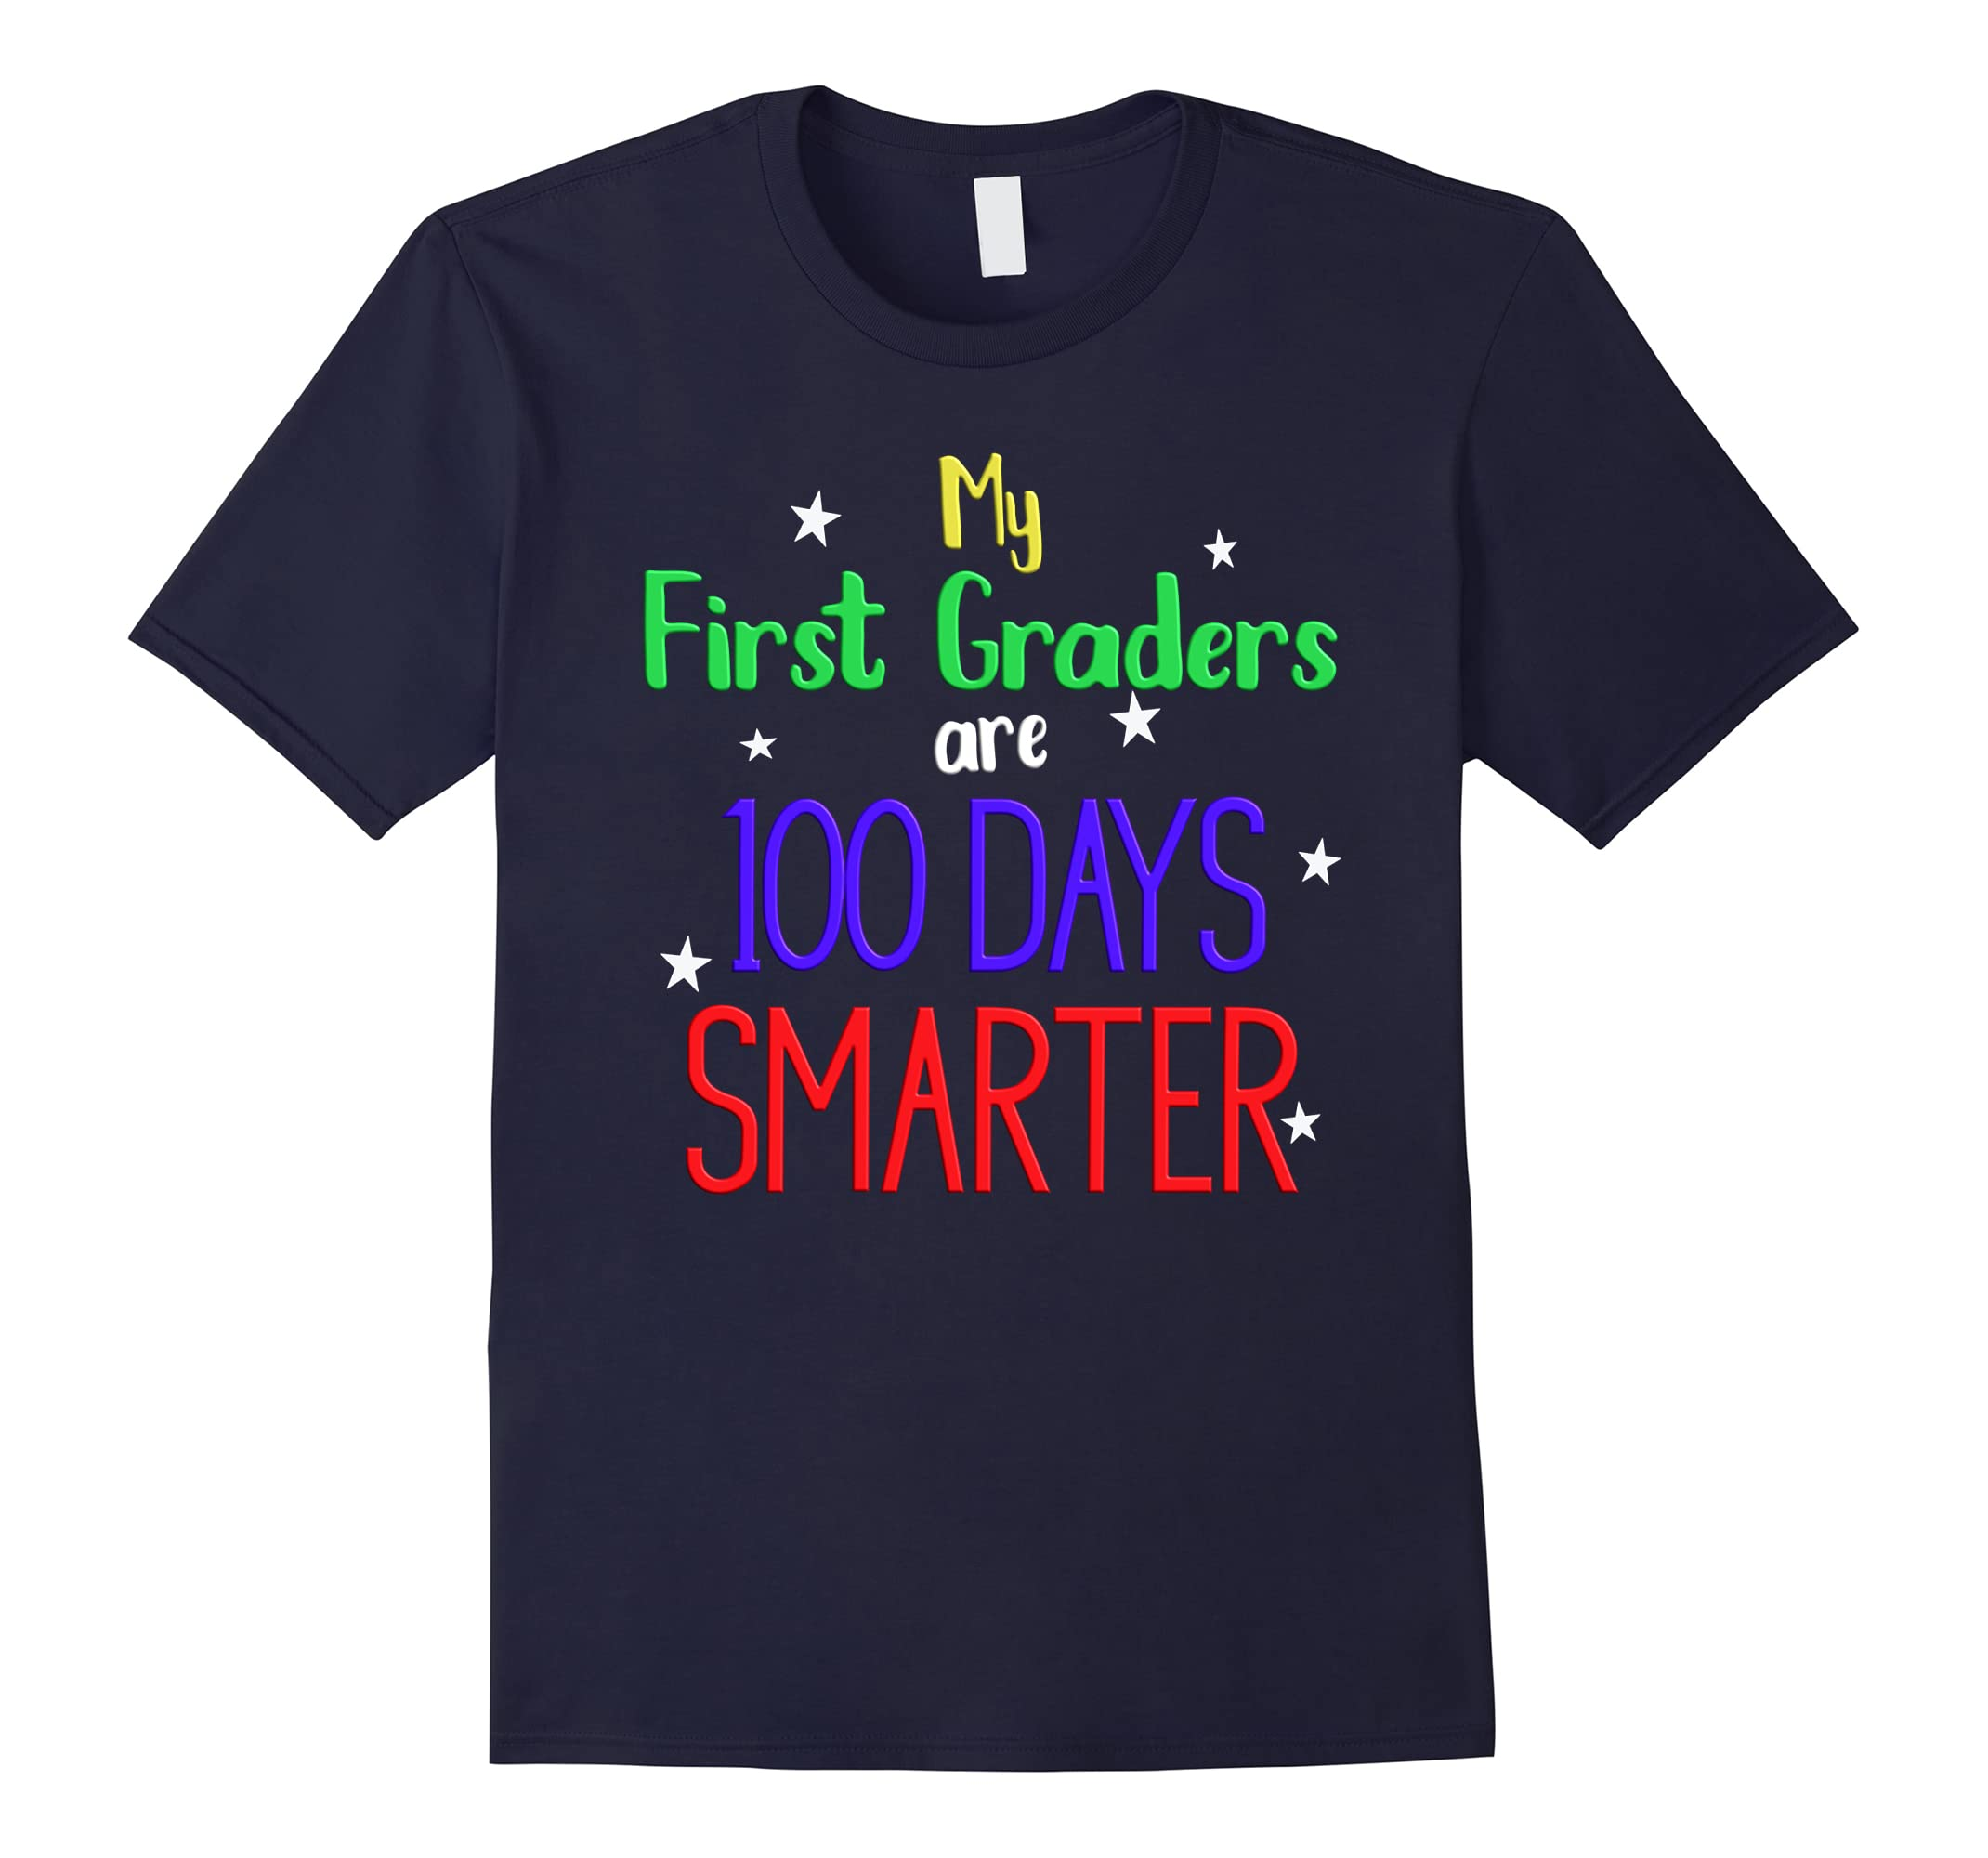 100 Days of School T-Shirt Cute My First Graders Smarter-ah my shirt one gift